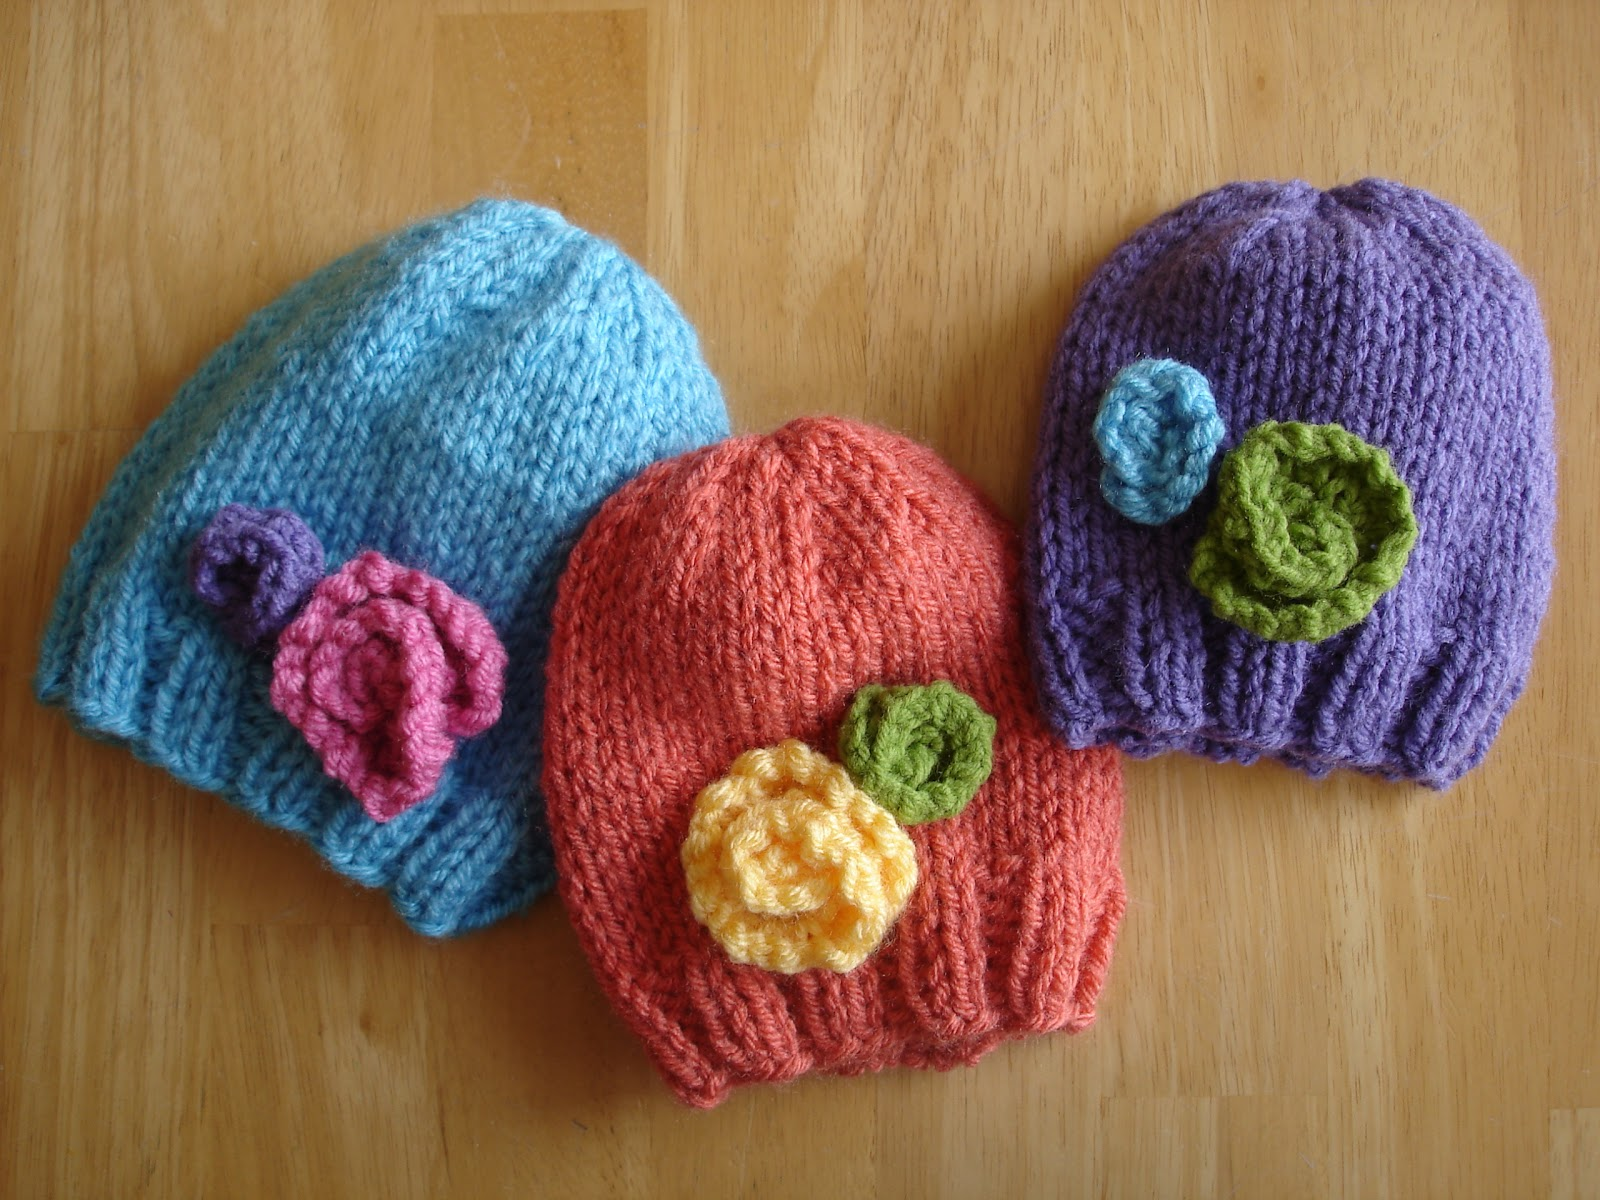 Knitting Patterns Child Hats Free : Fiber Flux: Free Knitting Pattern! Baby In Bloom Hats